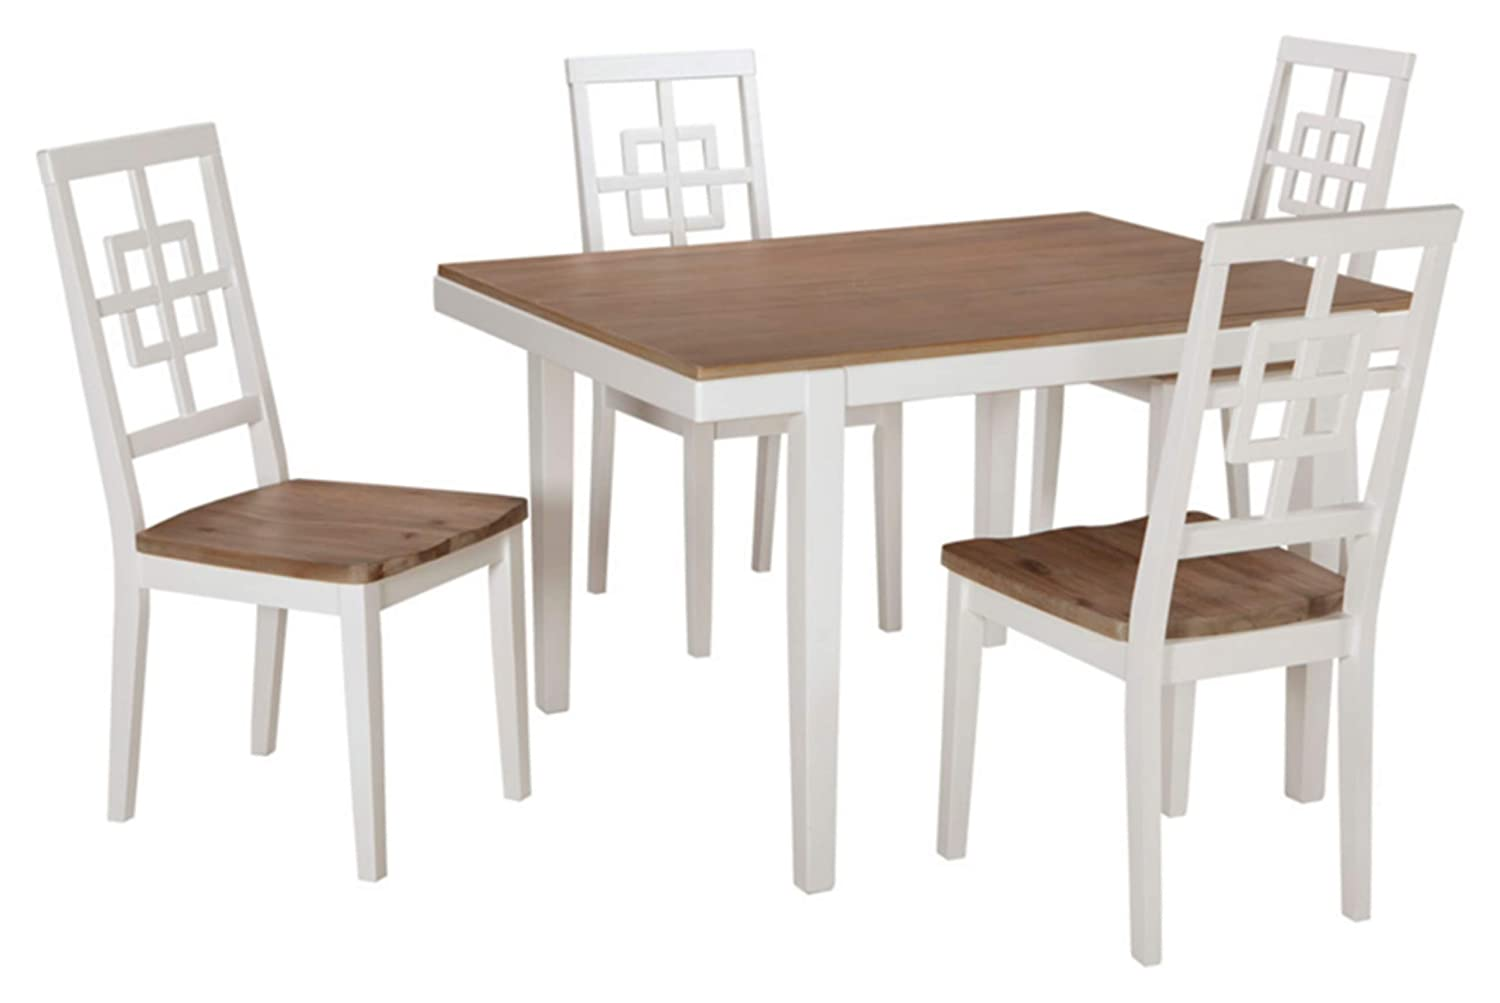 CDM product Signature Design by Ashley Furniture-Brovada Rectangular 5-Piece Dining Room Set-Includes Table & 4 Chairs-Two-Tone Finish big image